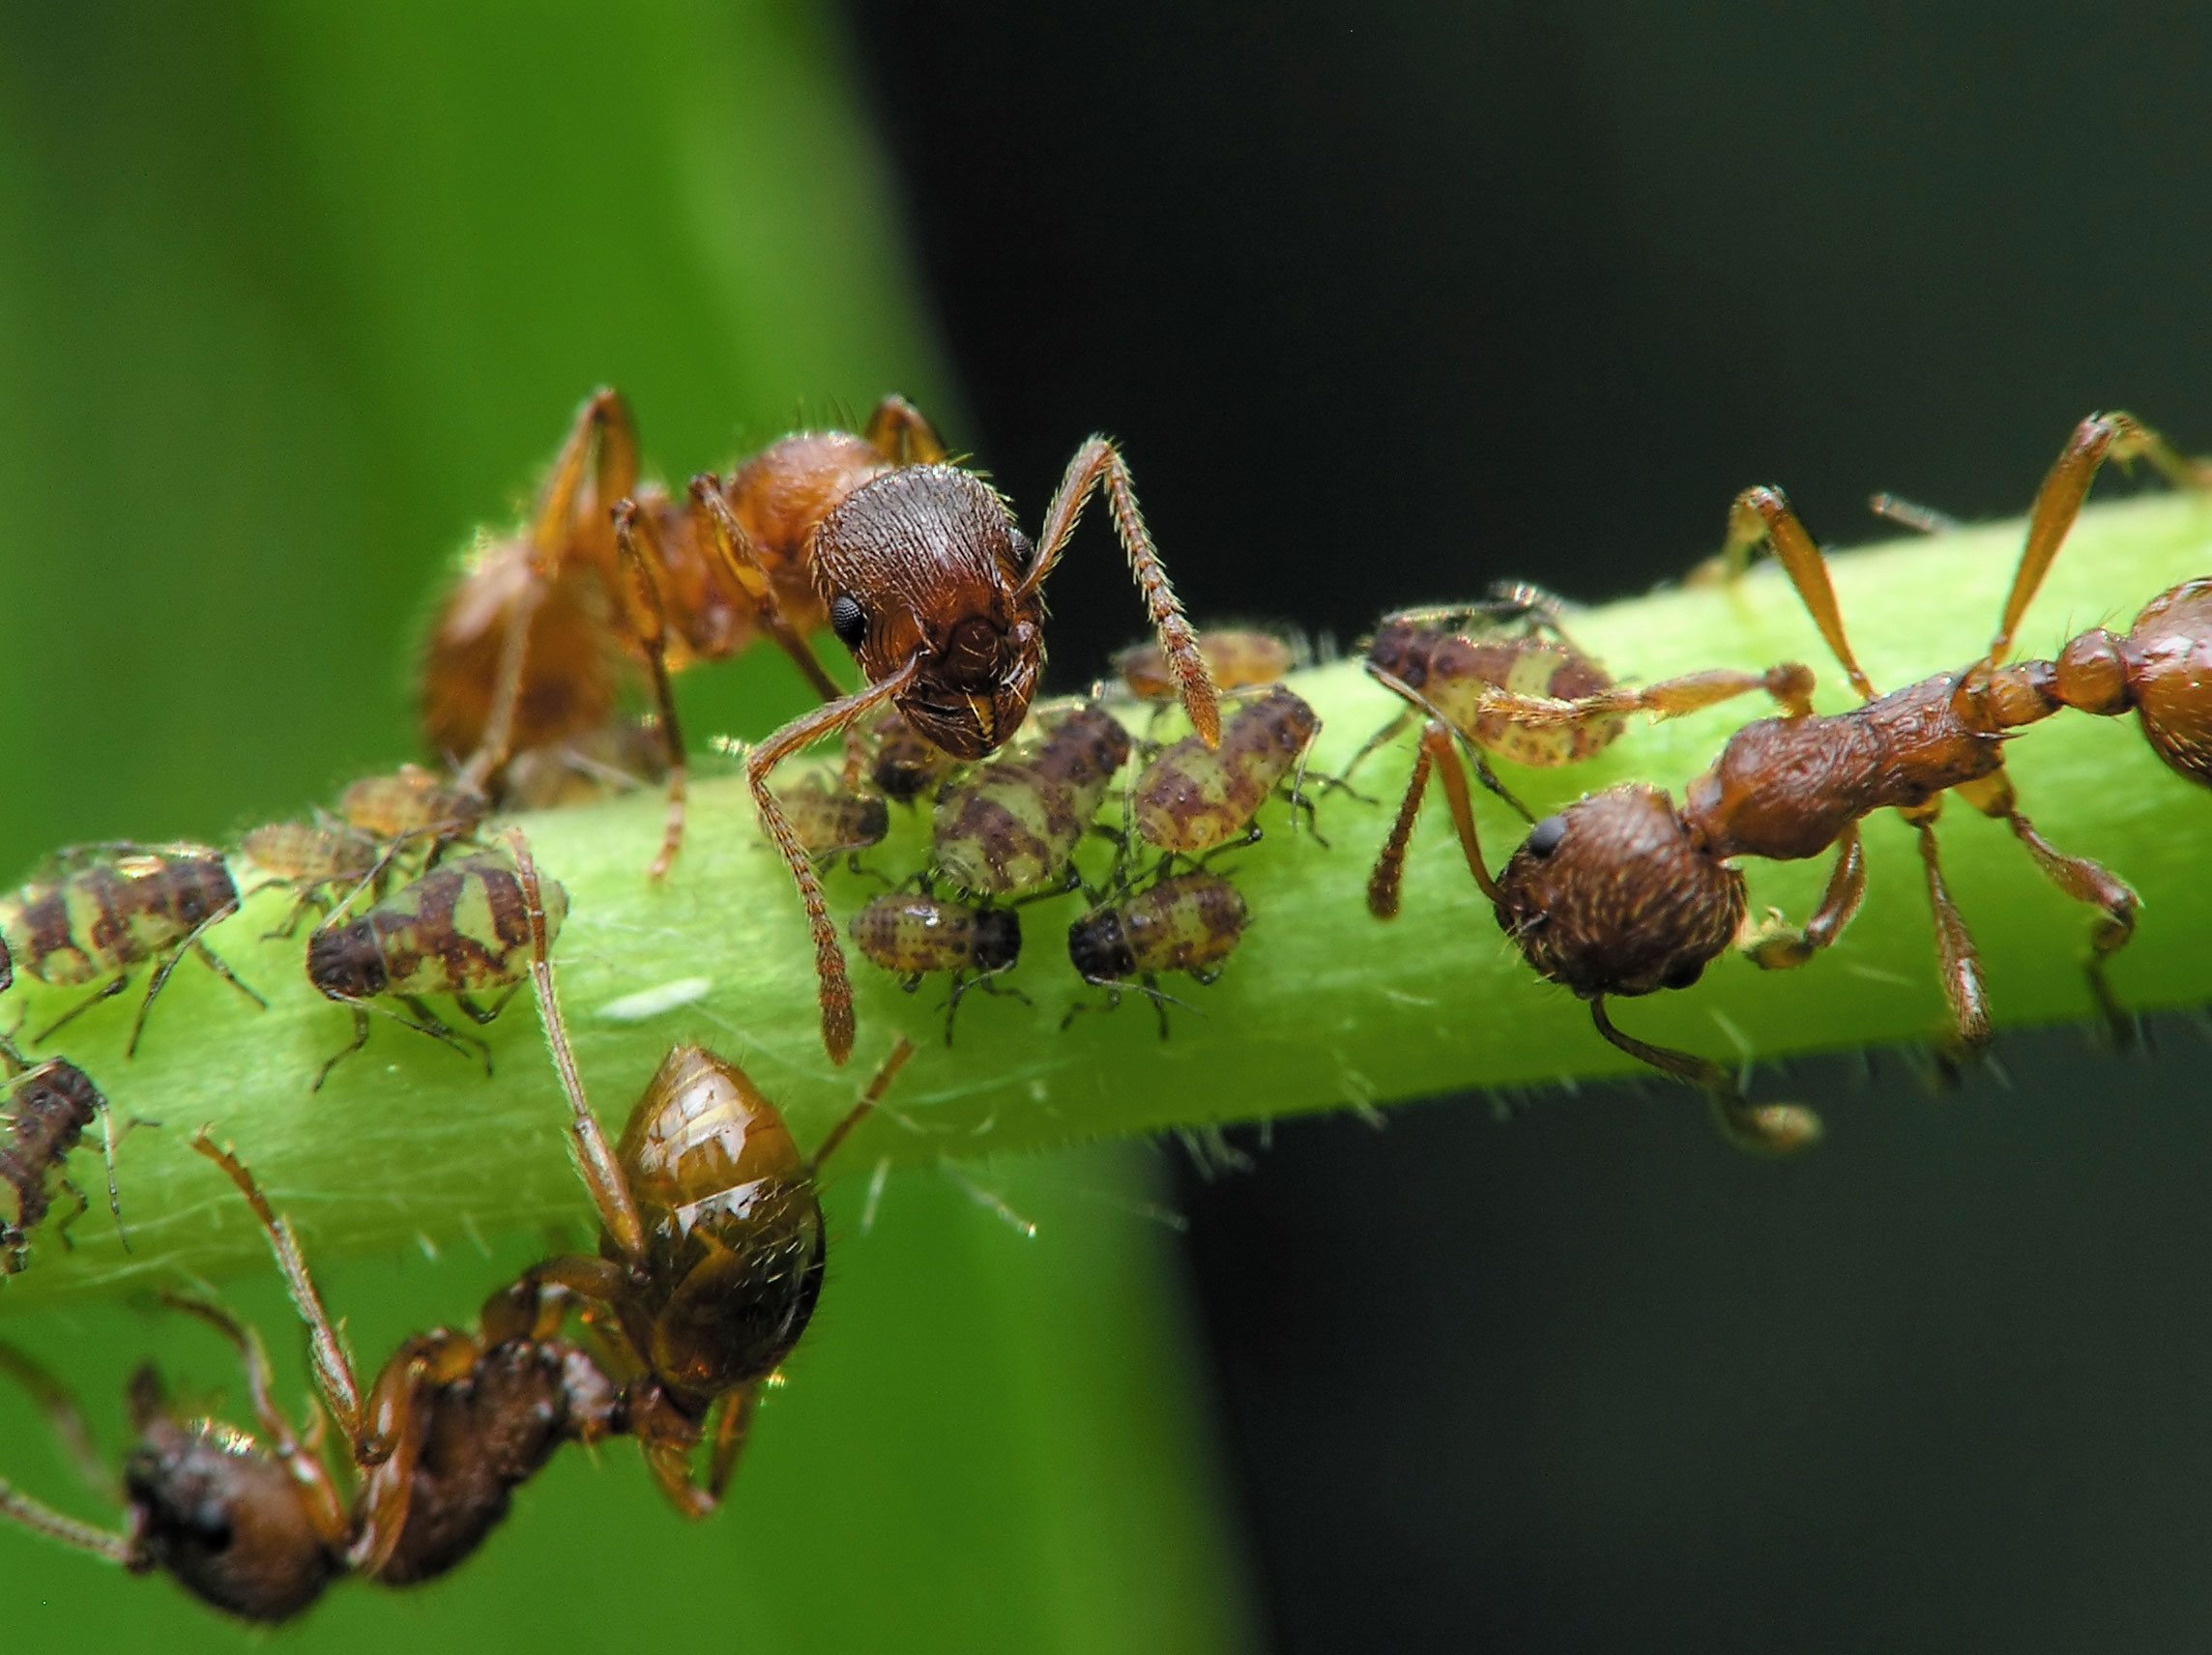 leaf hopper and meat ant relationship questions